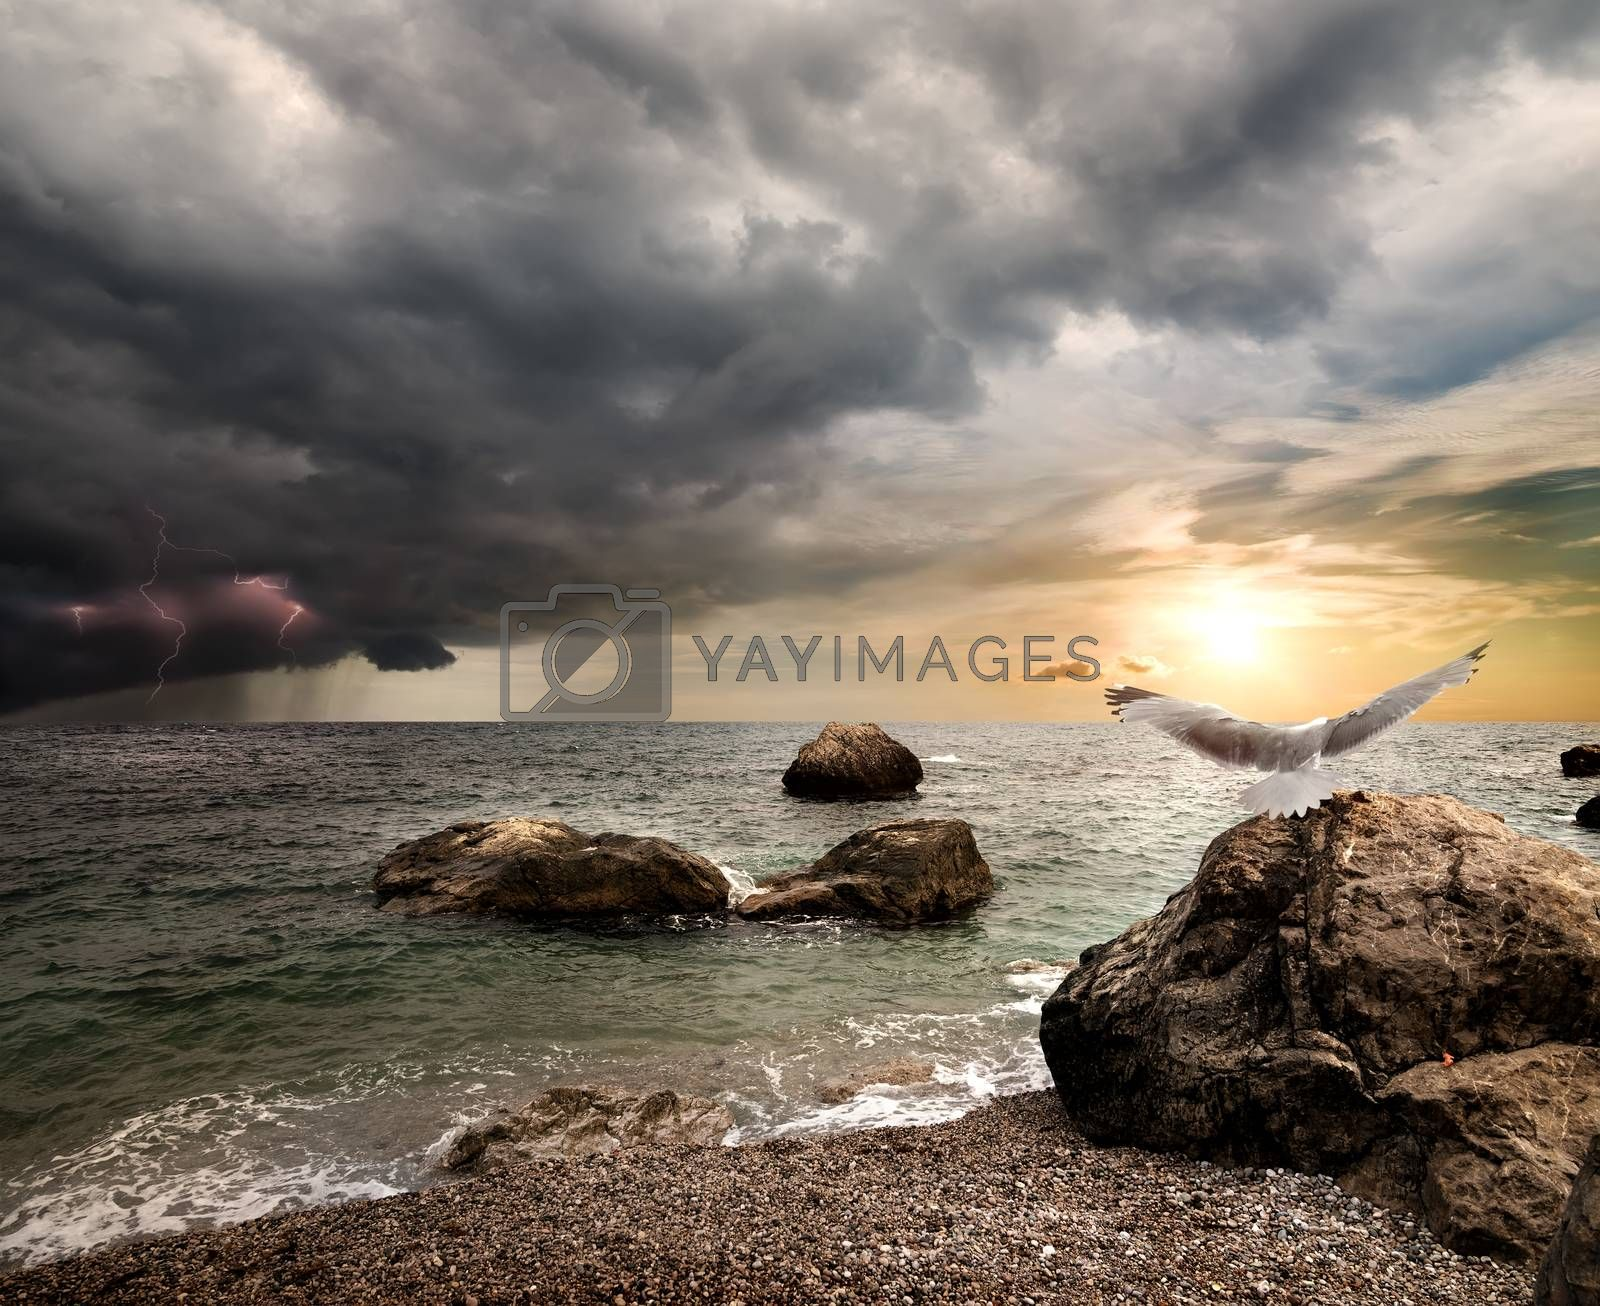 Thunderstorm over sea by Givaga